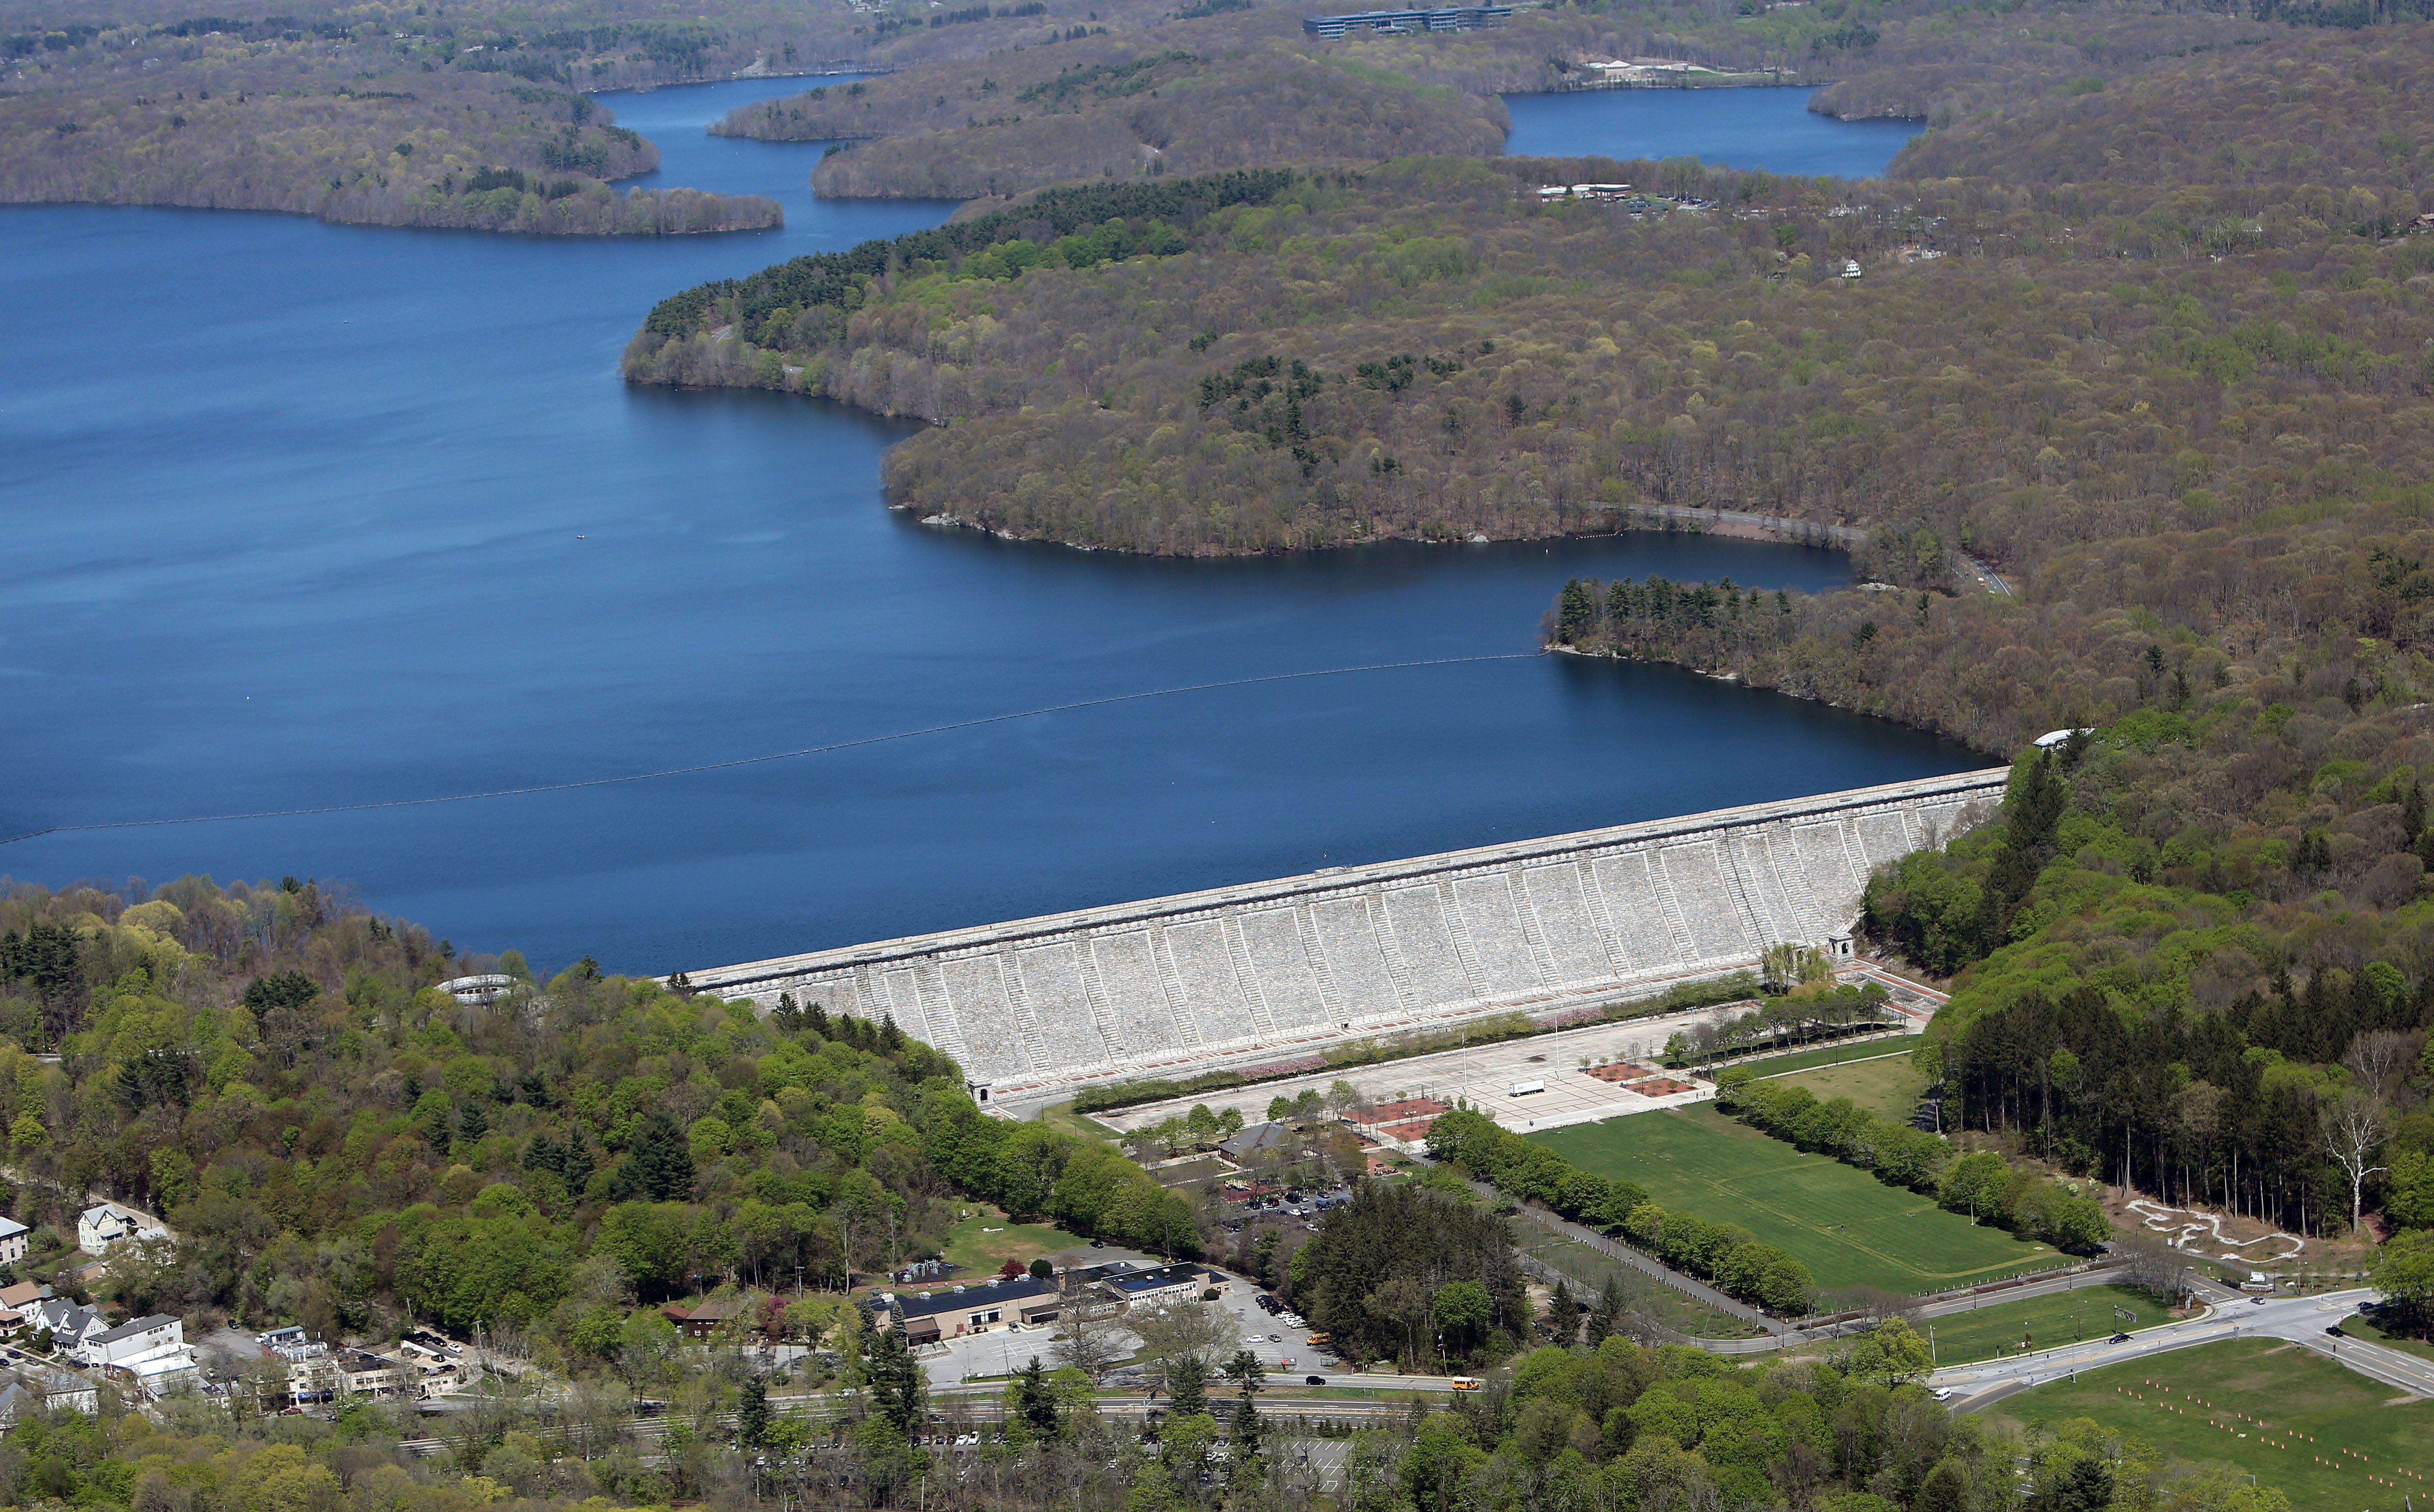 Aging Infrastructure: Dam Safety